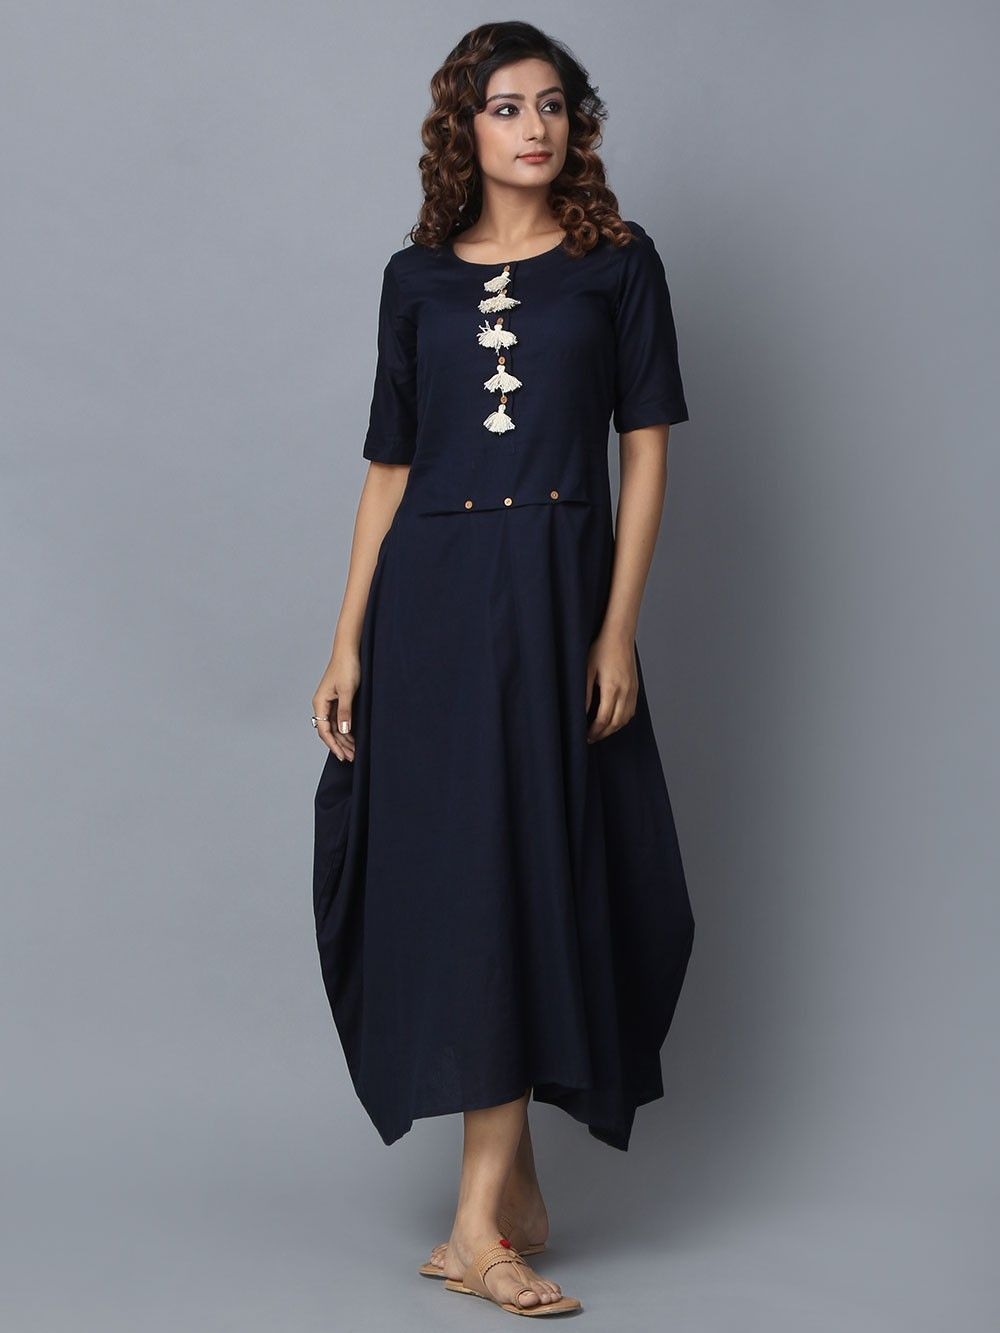 6cce4181ae5 Buy Blue Cotton Linen Dress online at Theloom